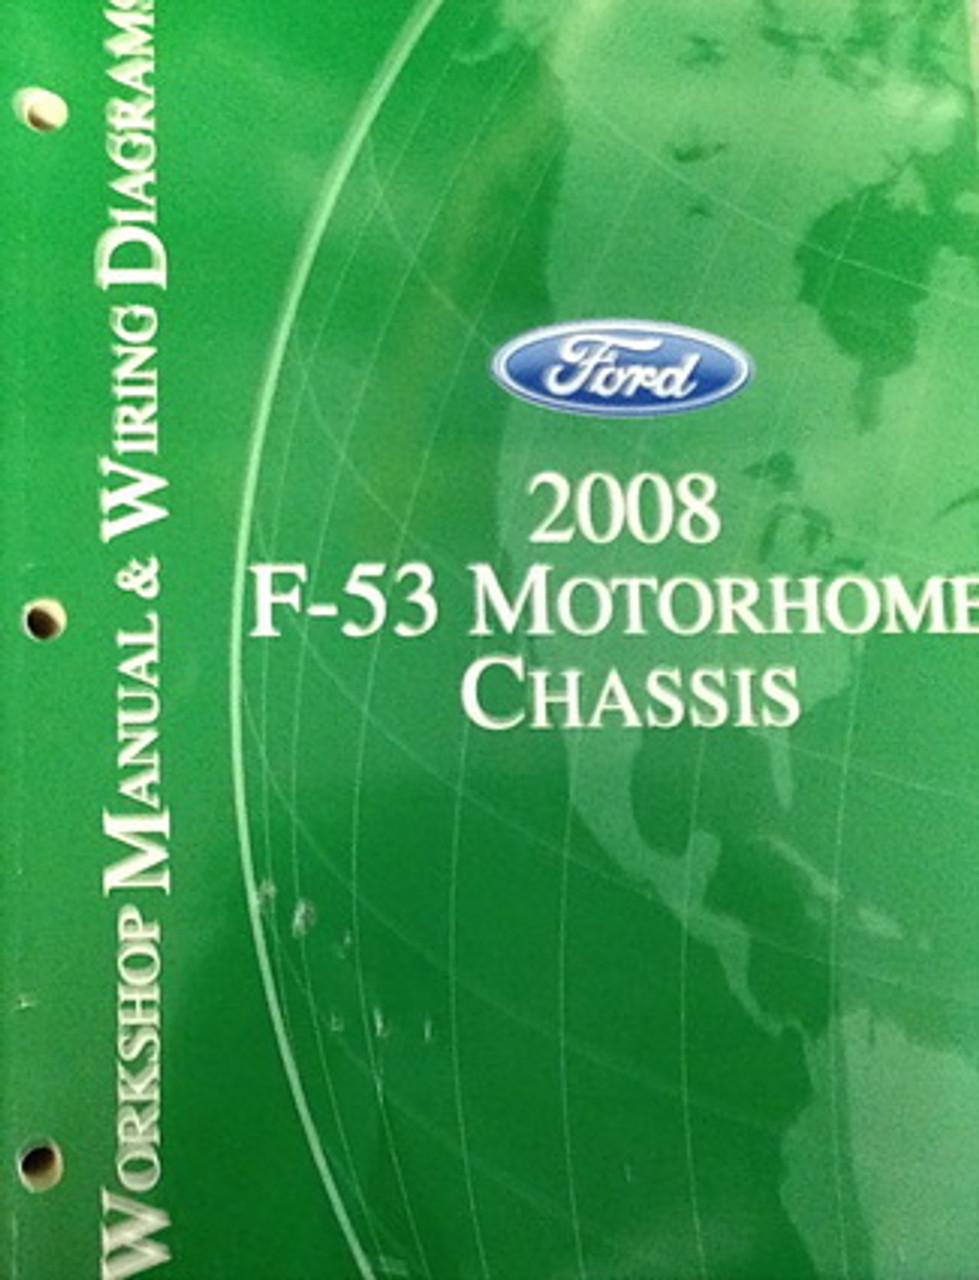 2008 Ford F53 Motorhome Chassis Factory Shop Service Manual & Wiring  Diagrams - Factory Repair Manuals | Ford F53 Chassis Wiring Diagram |  | Factory Repair Manuals